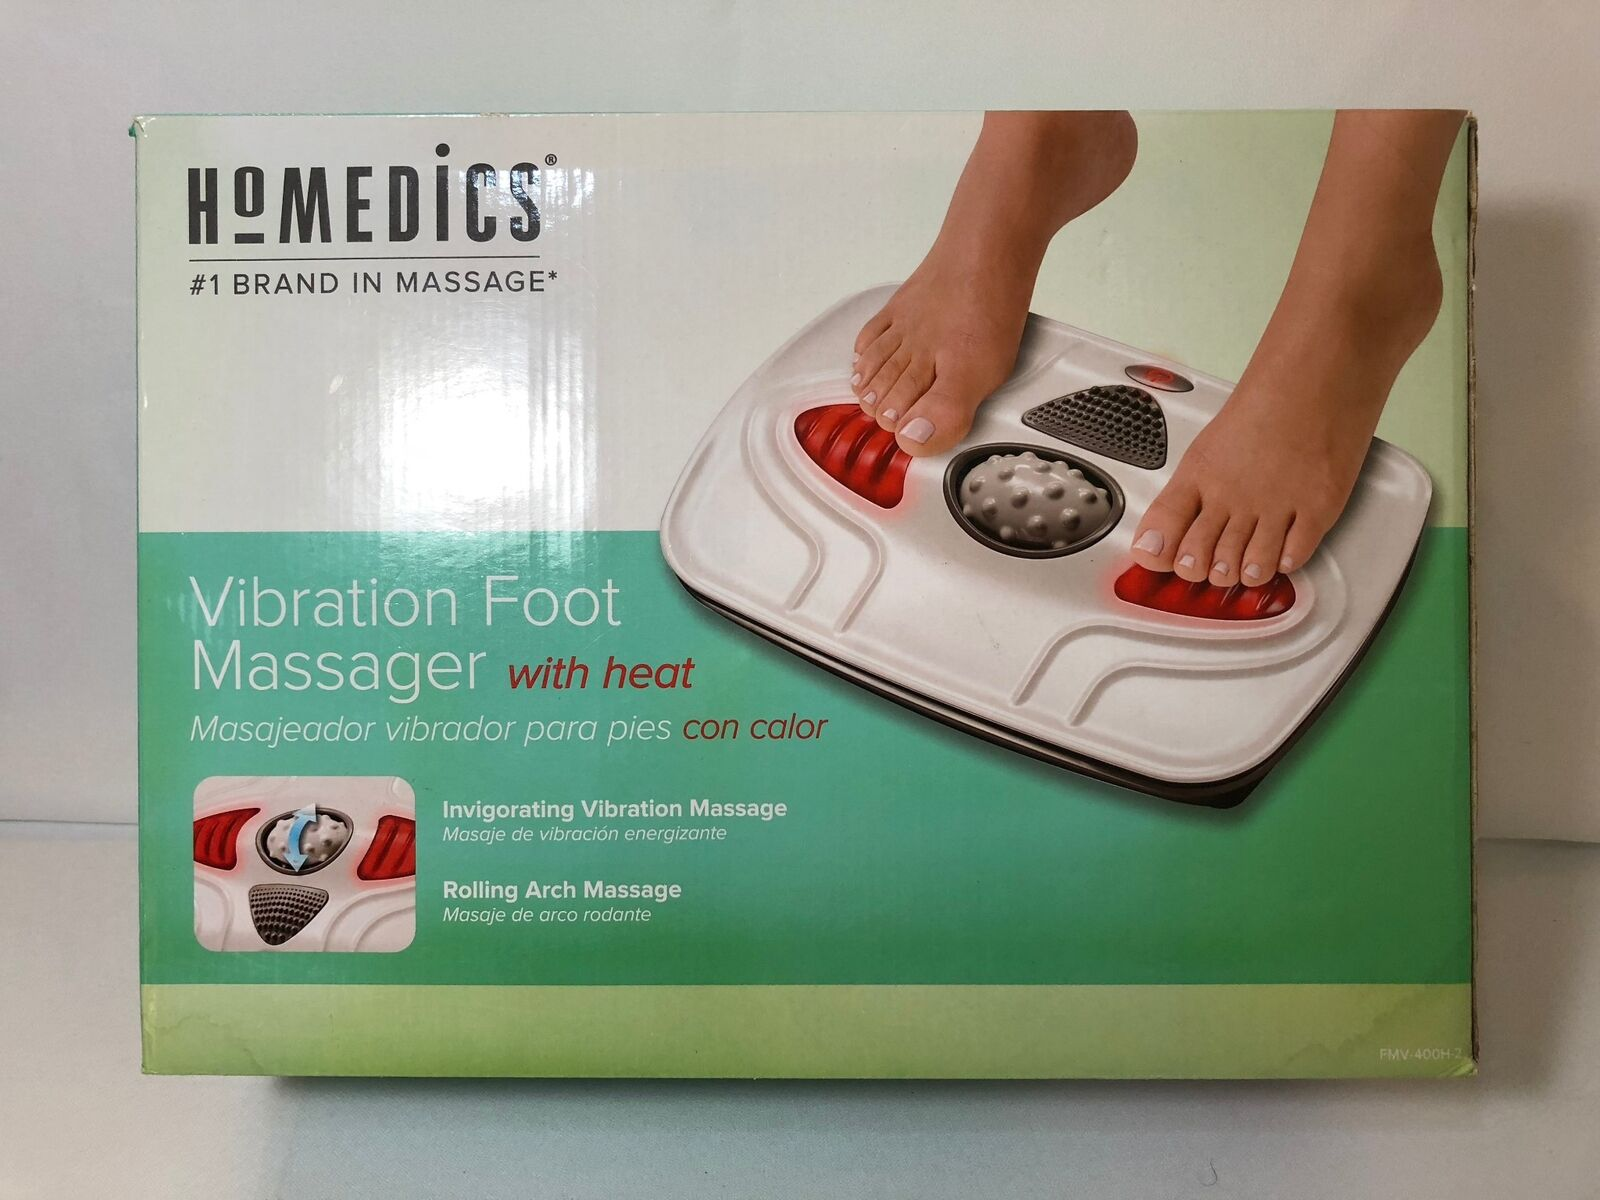 Vibration In Foot >> Homedics Vibration Foot Massager With Heat Fmv 400 H 2